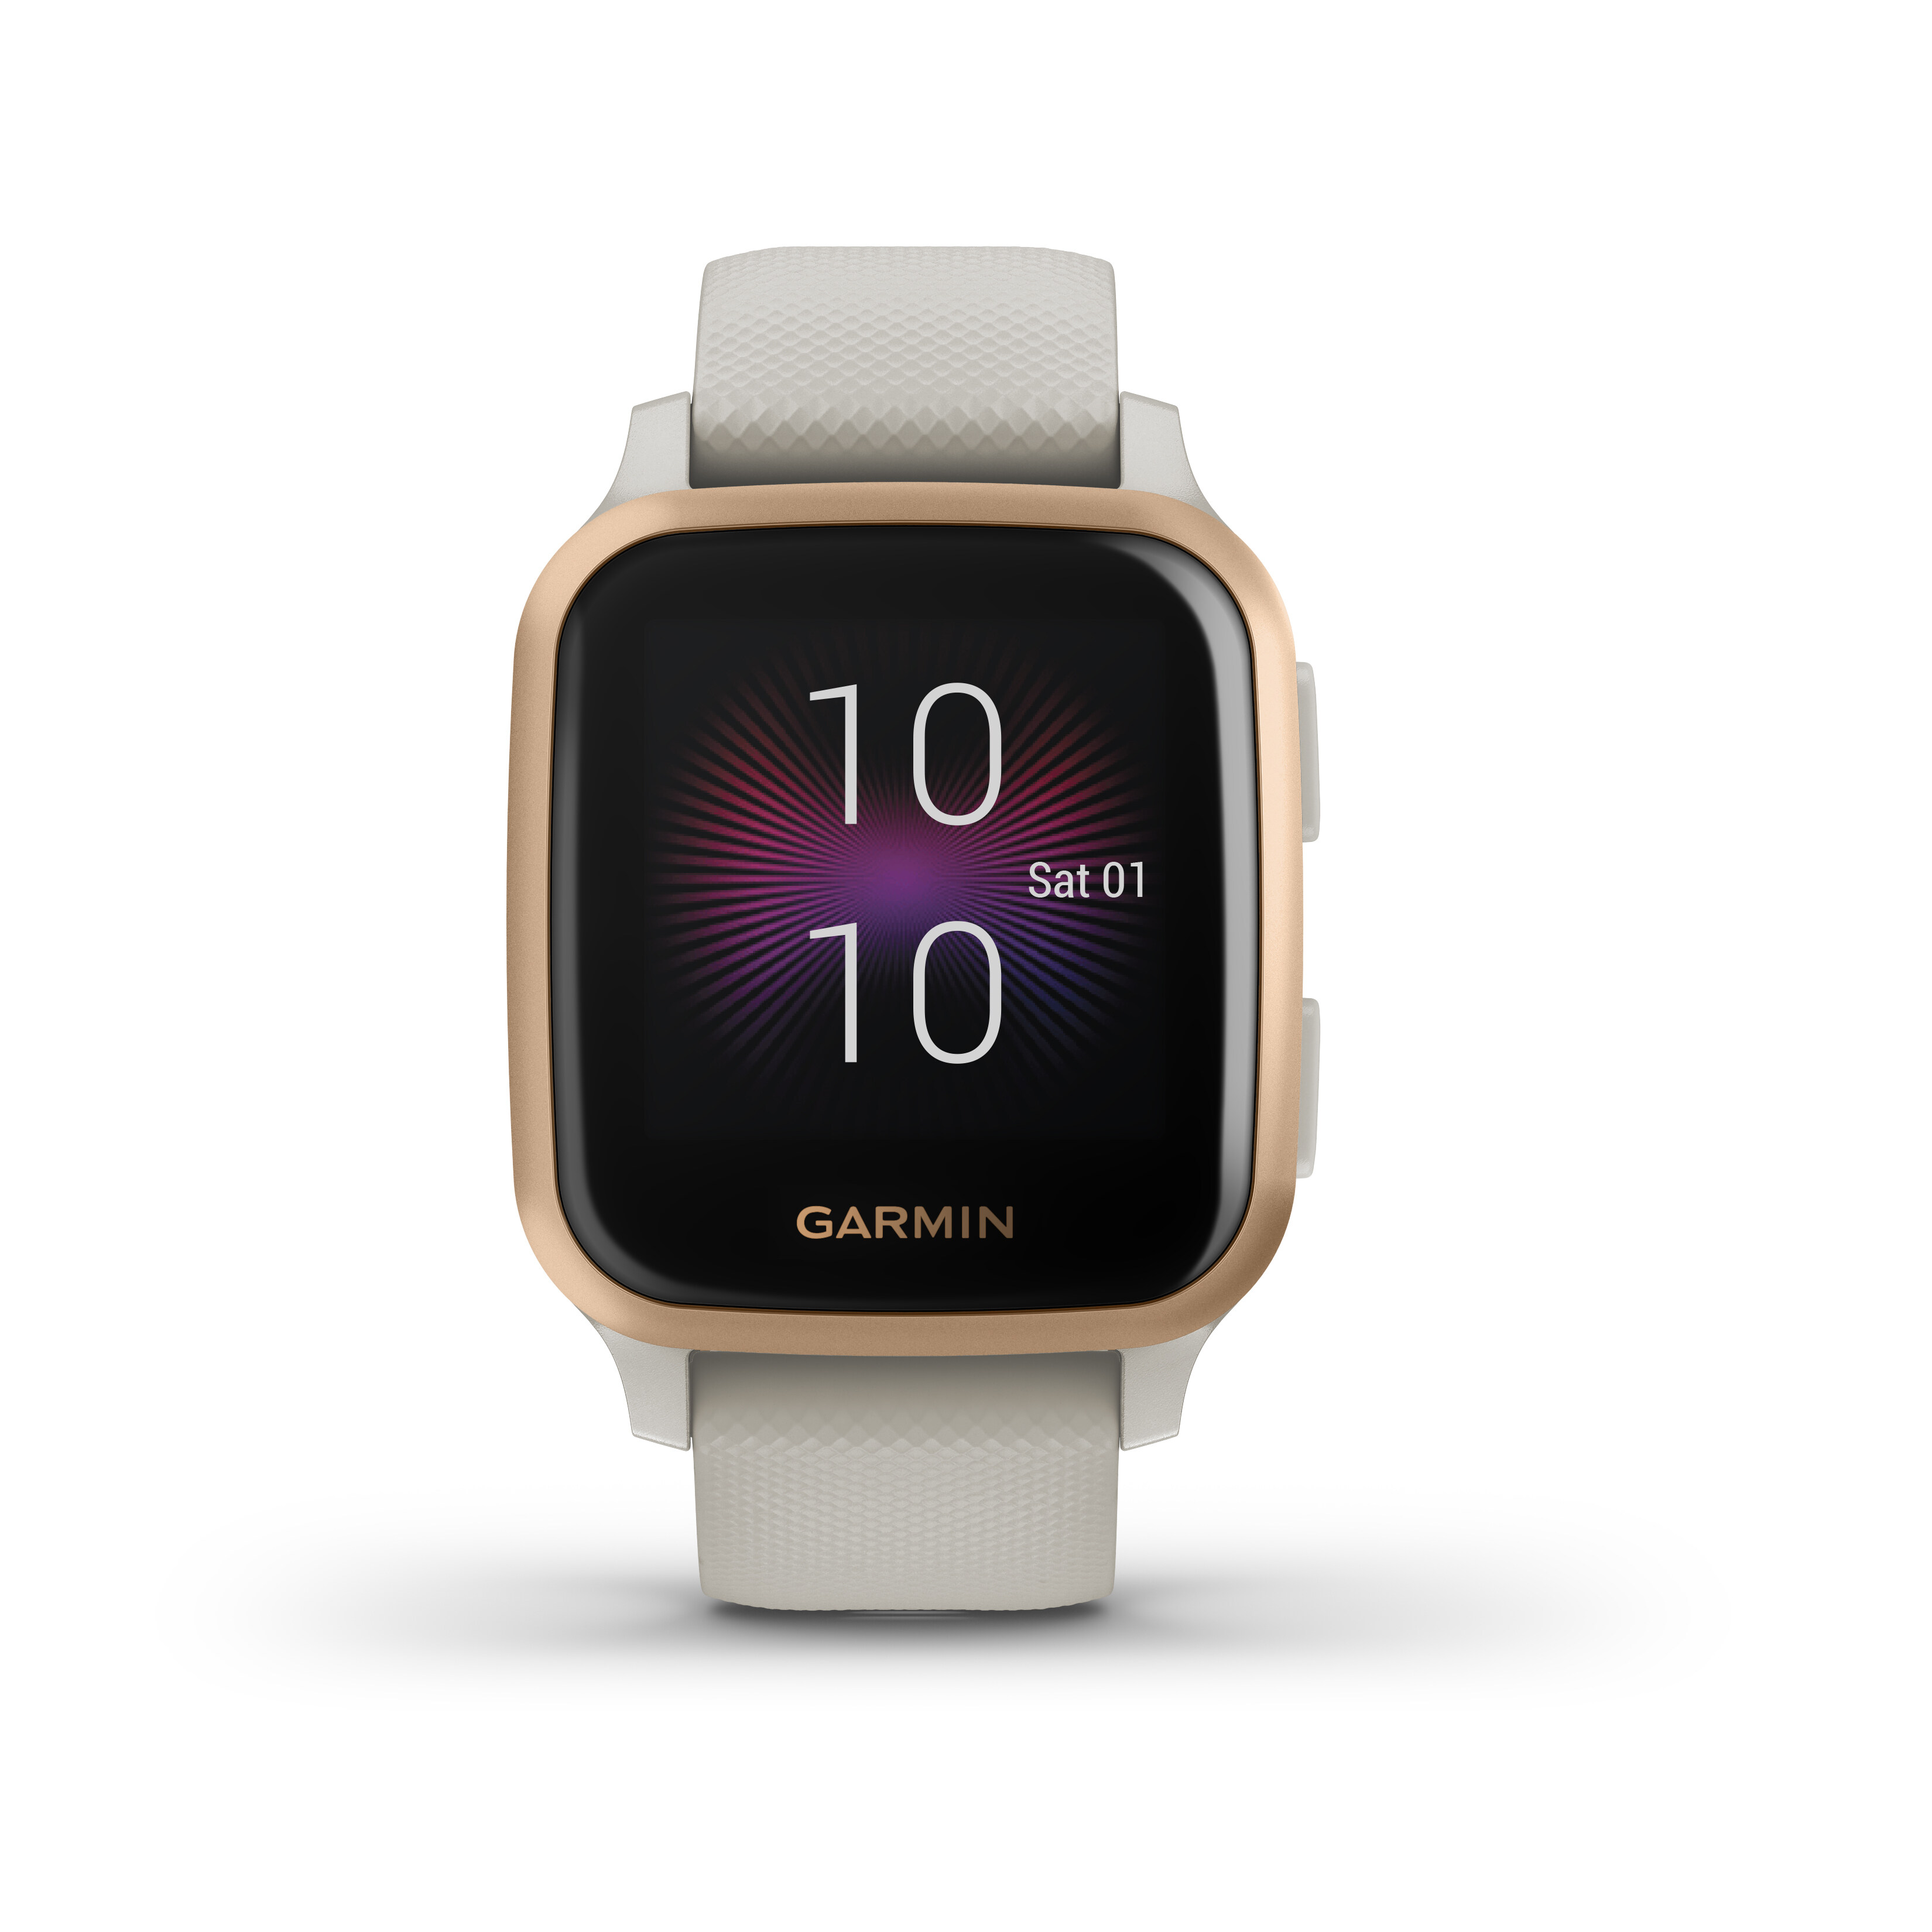 (New 2020) Garmin Venu SQ / Venu SQ Music  (Shadow Gray/Slate  White/Light Gold  Lavender/Purple)(Black/Slate  Light Sand/Rose Gold Navy/Light Gold  Moss/Slate) Smart Watch 2 YEARS WARRANTY